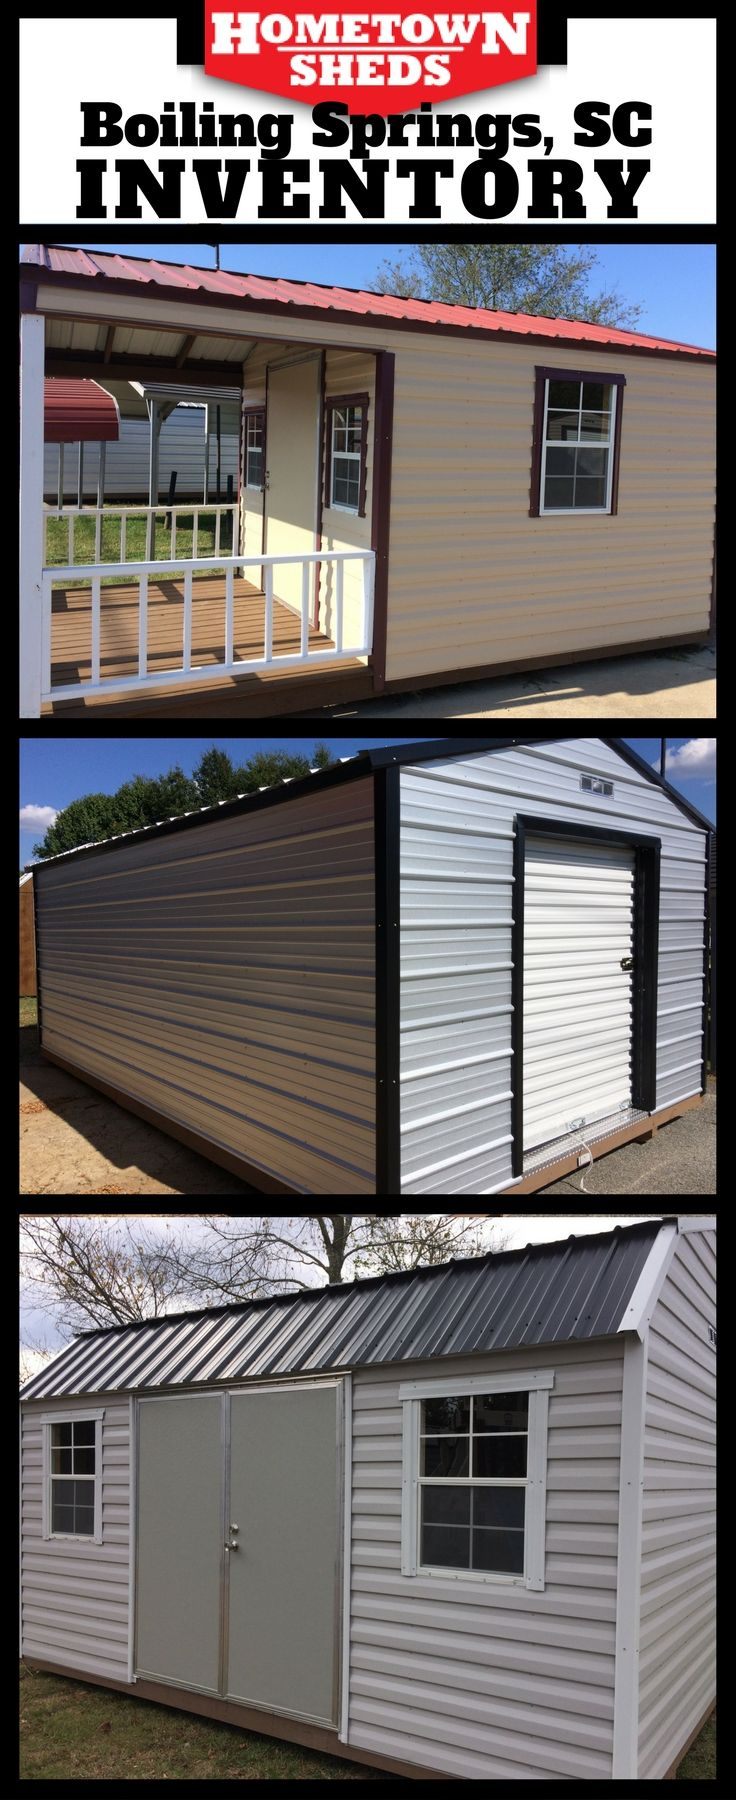 Hometown Sheds Boiling Springs has a great selection of storage sheds, utility buildings, porch models, barns, steel buildings, and more. See what we have that will help you solve your storage problems today. Rent to Own with NO CREDIT CHECK. Zero Down Financing Available oac.